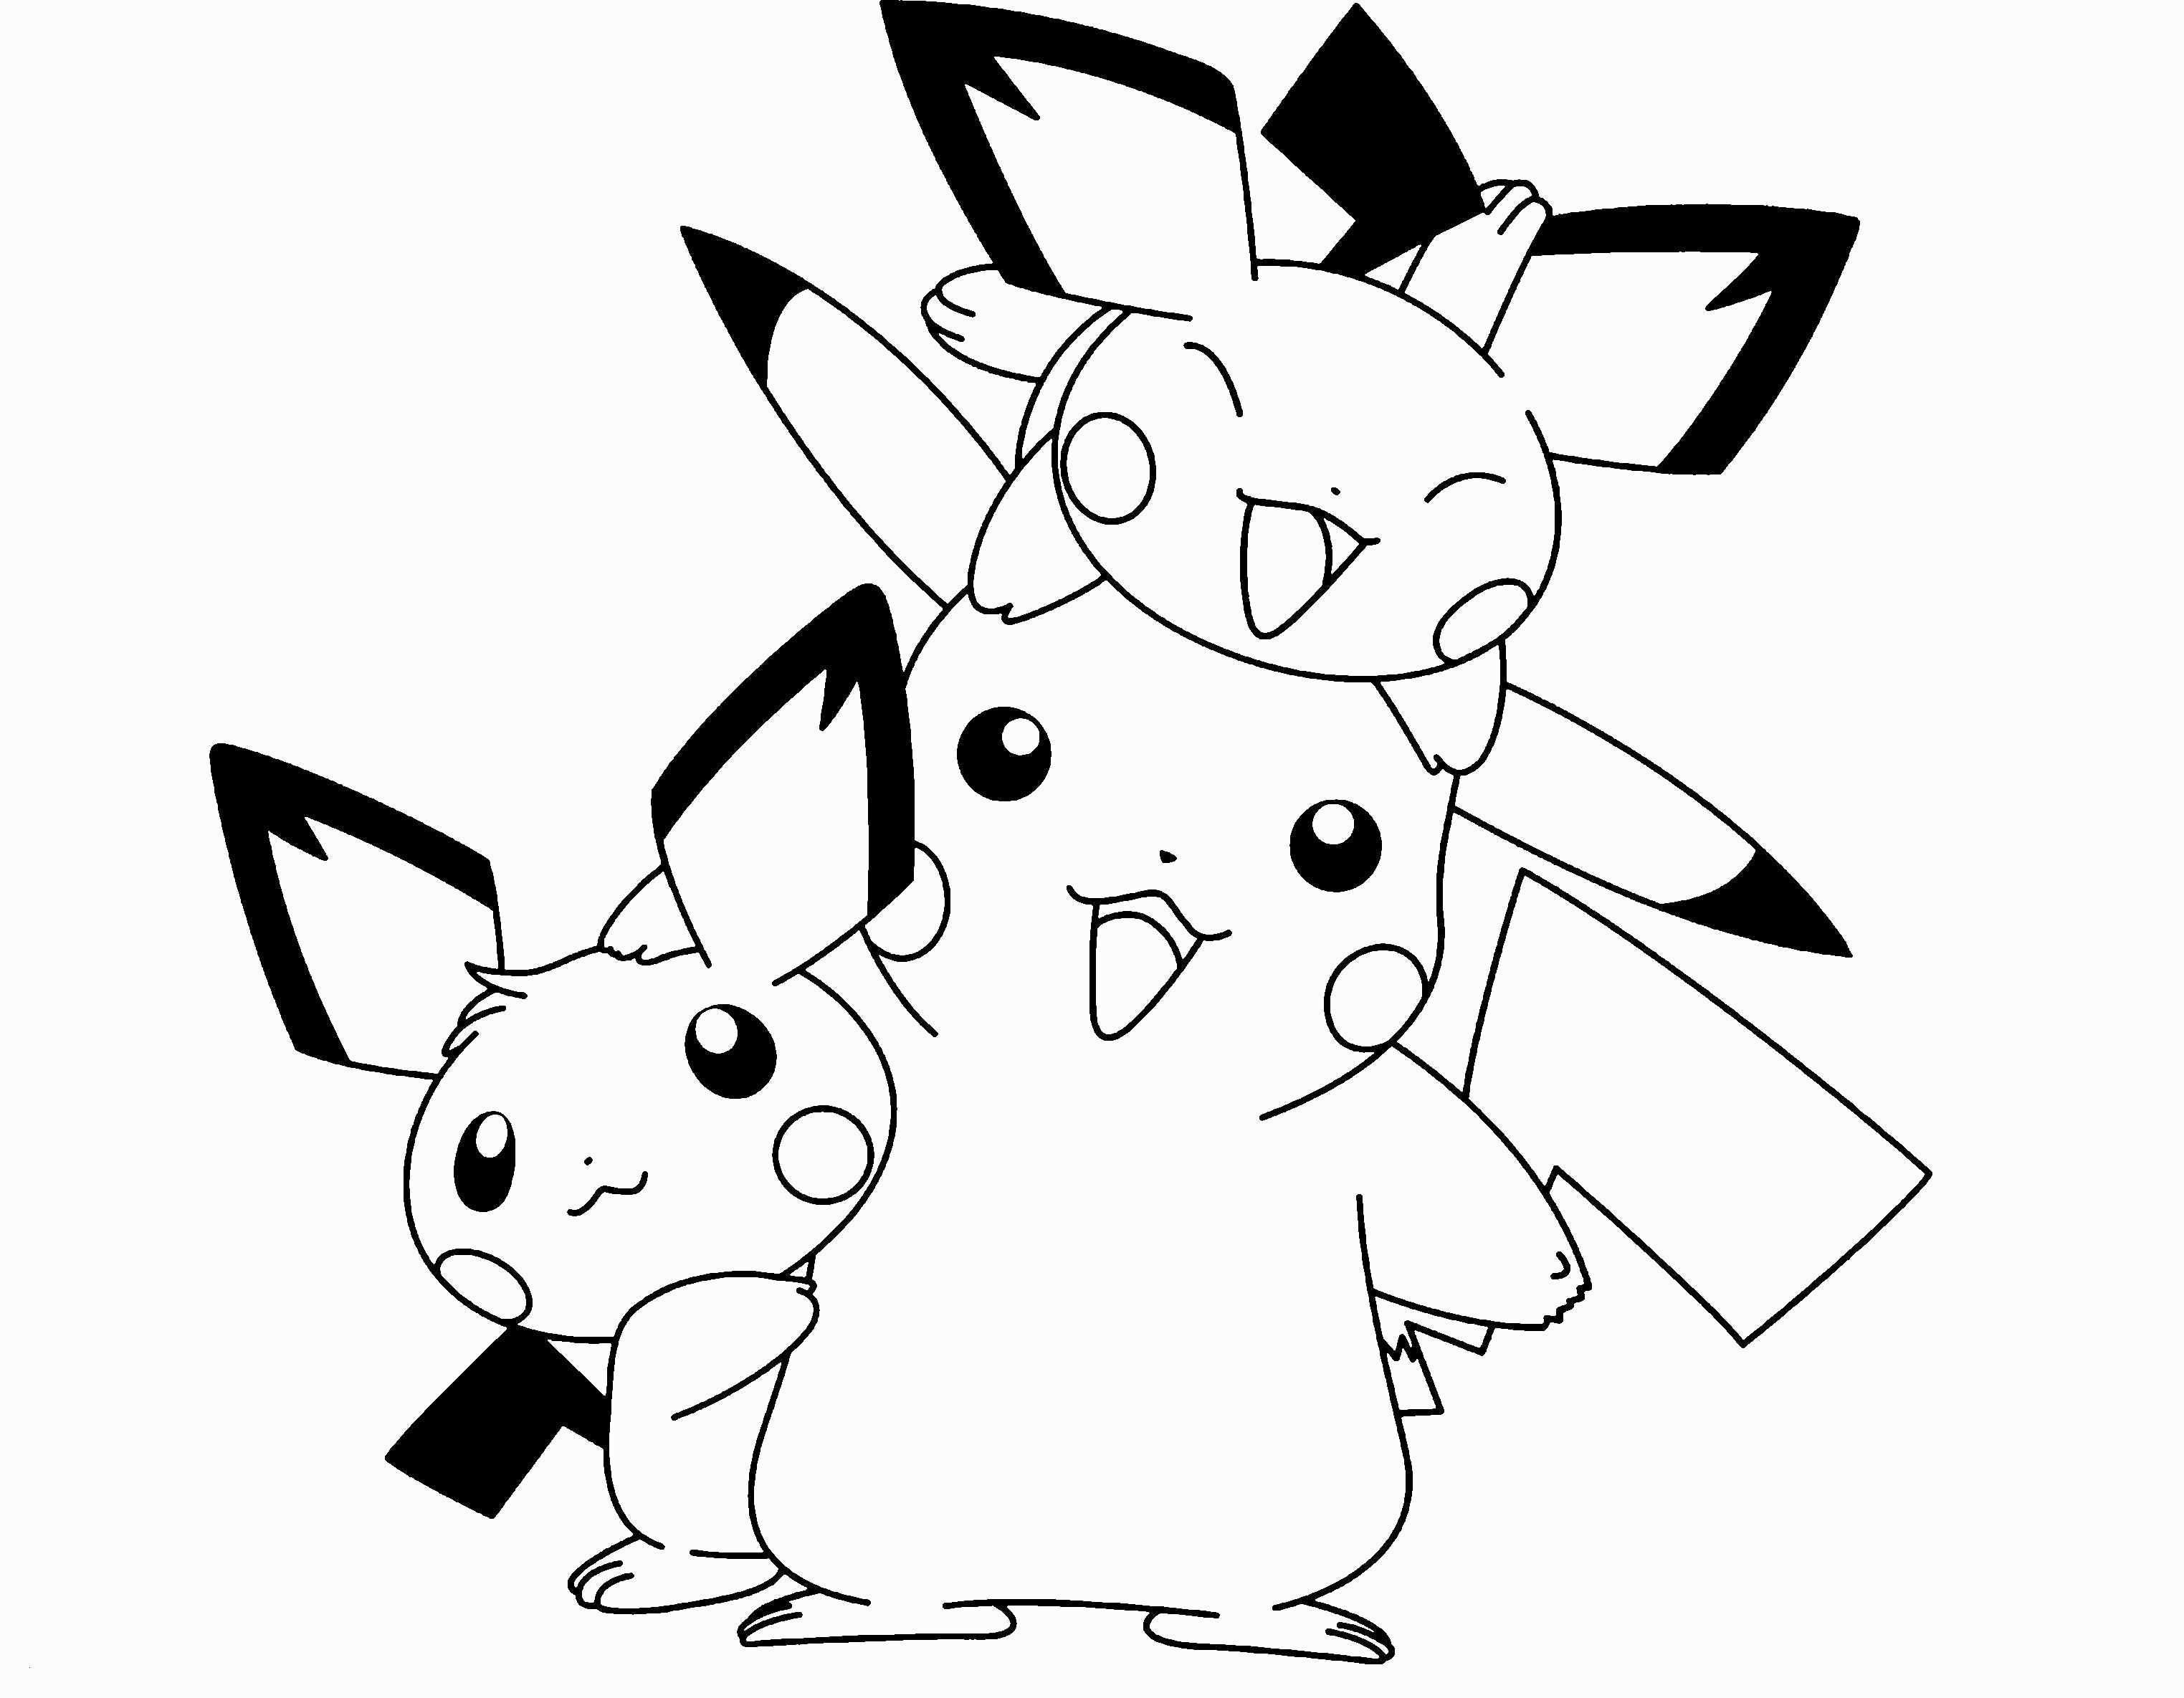 Pokemon Drawing Book Download Luxury Pokemon Coloring Pages Printable Elegant Pokemon Coloring Pikachu Coloring Page Pokemon Coloring Star Coloring Pages